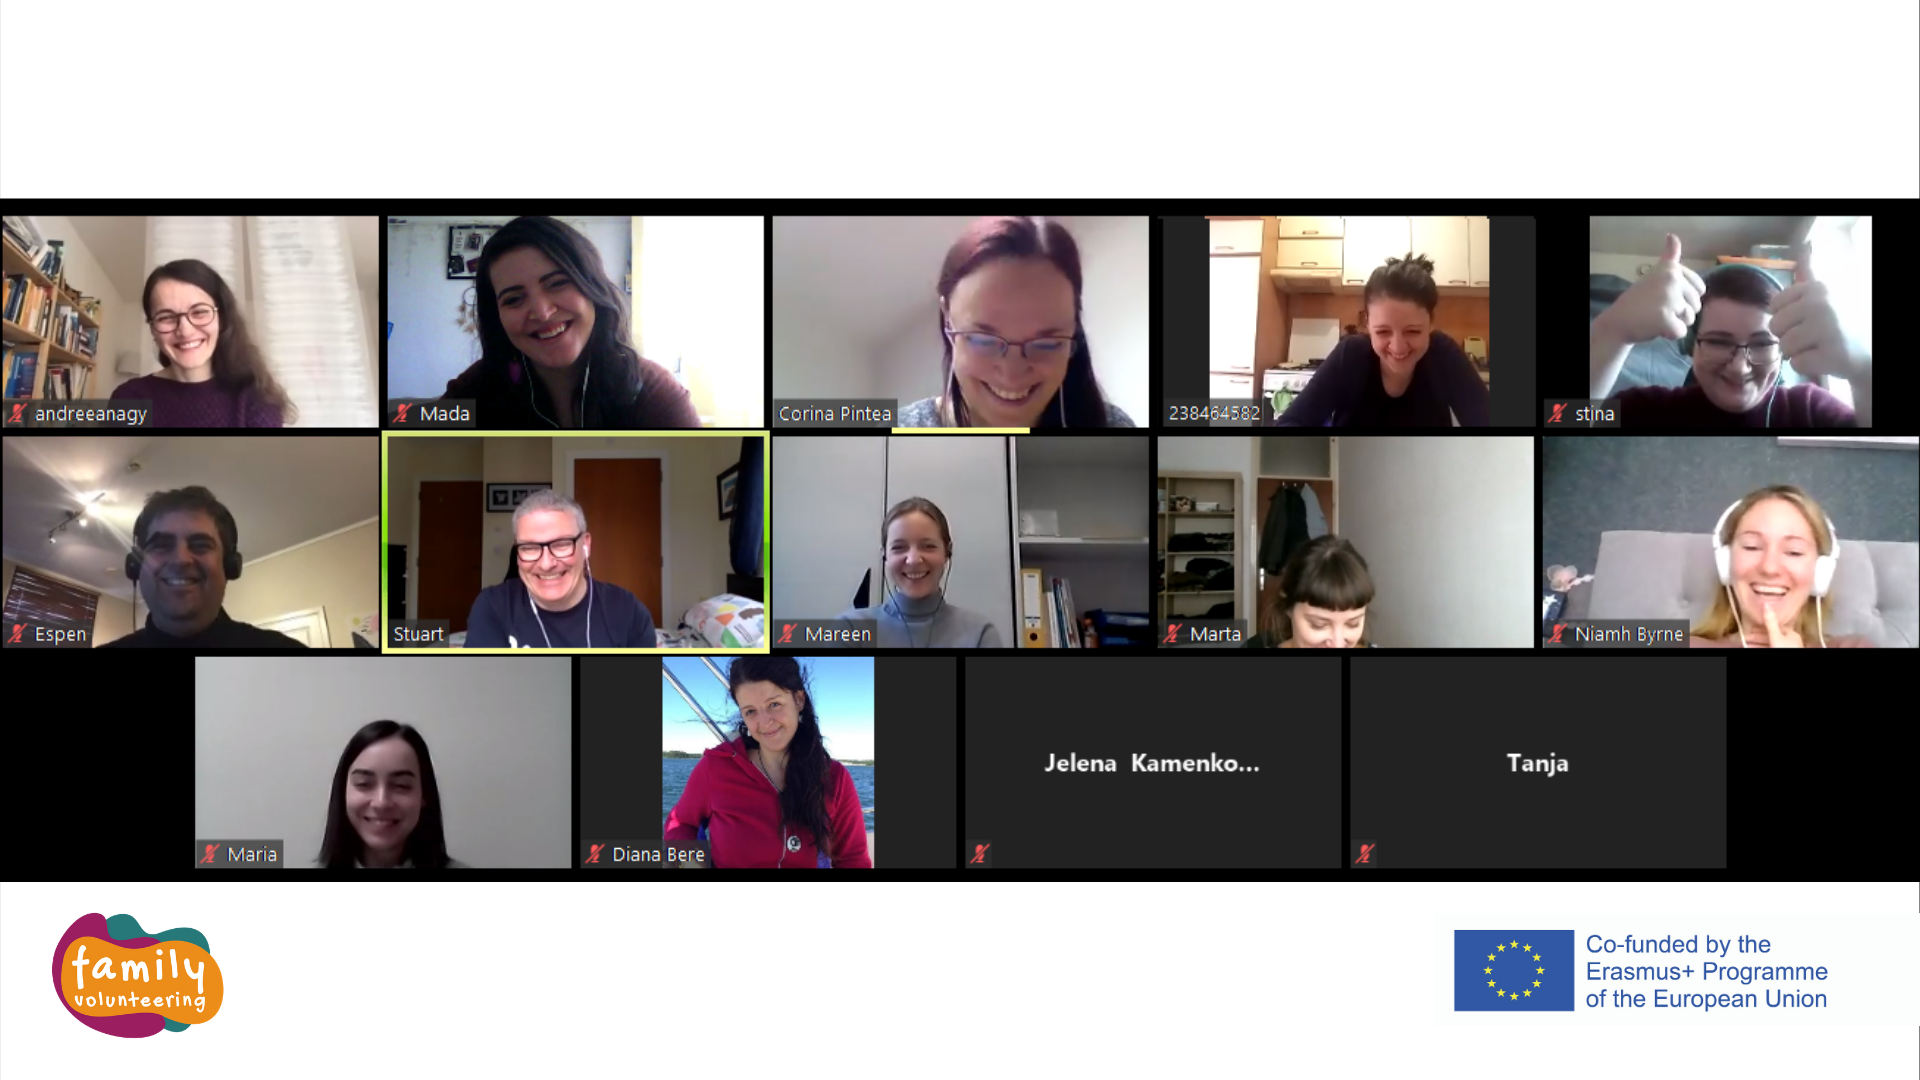 Online Meeting and COVID19 Challenges